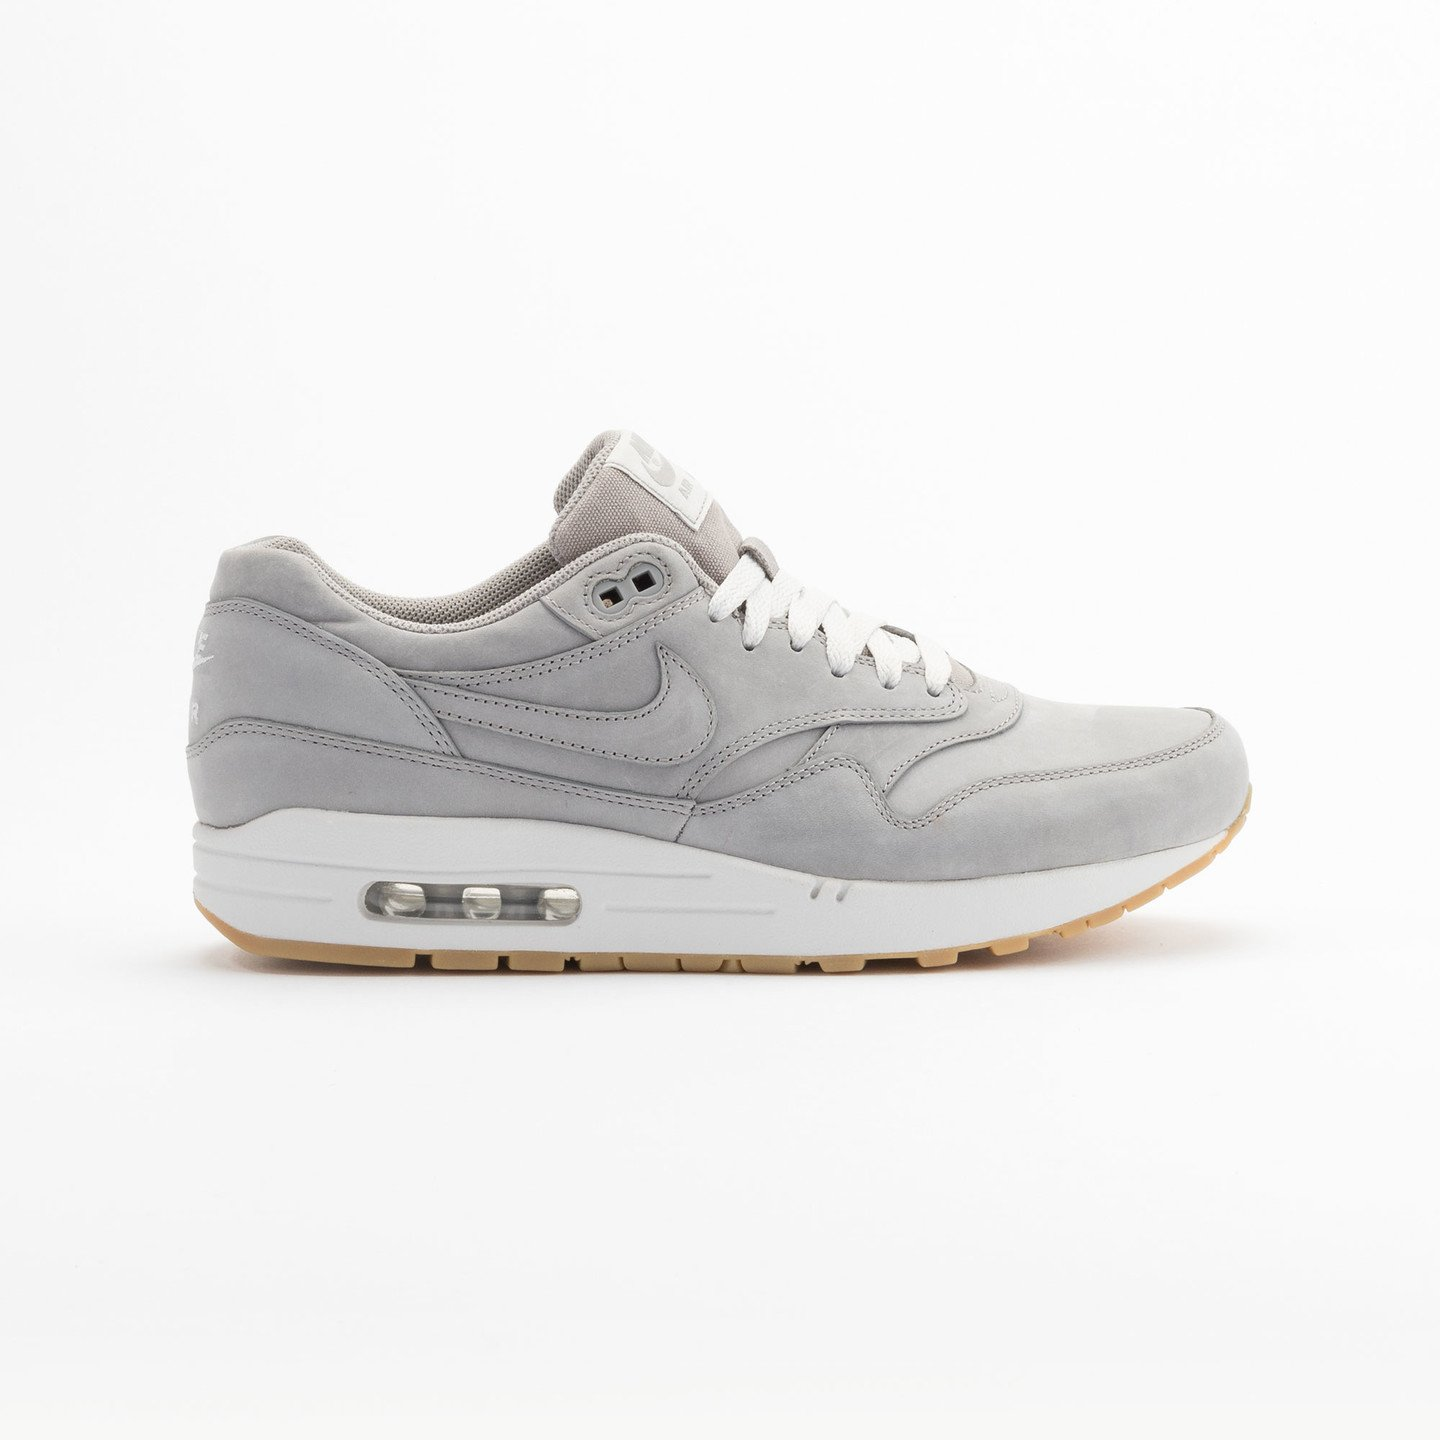 Nike Air Max Leather Premium Medium Grey 705282-005-43